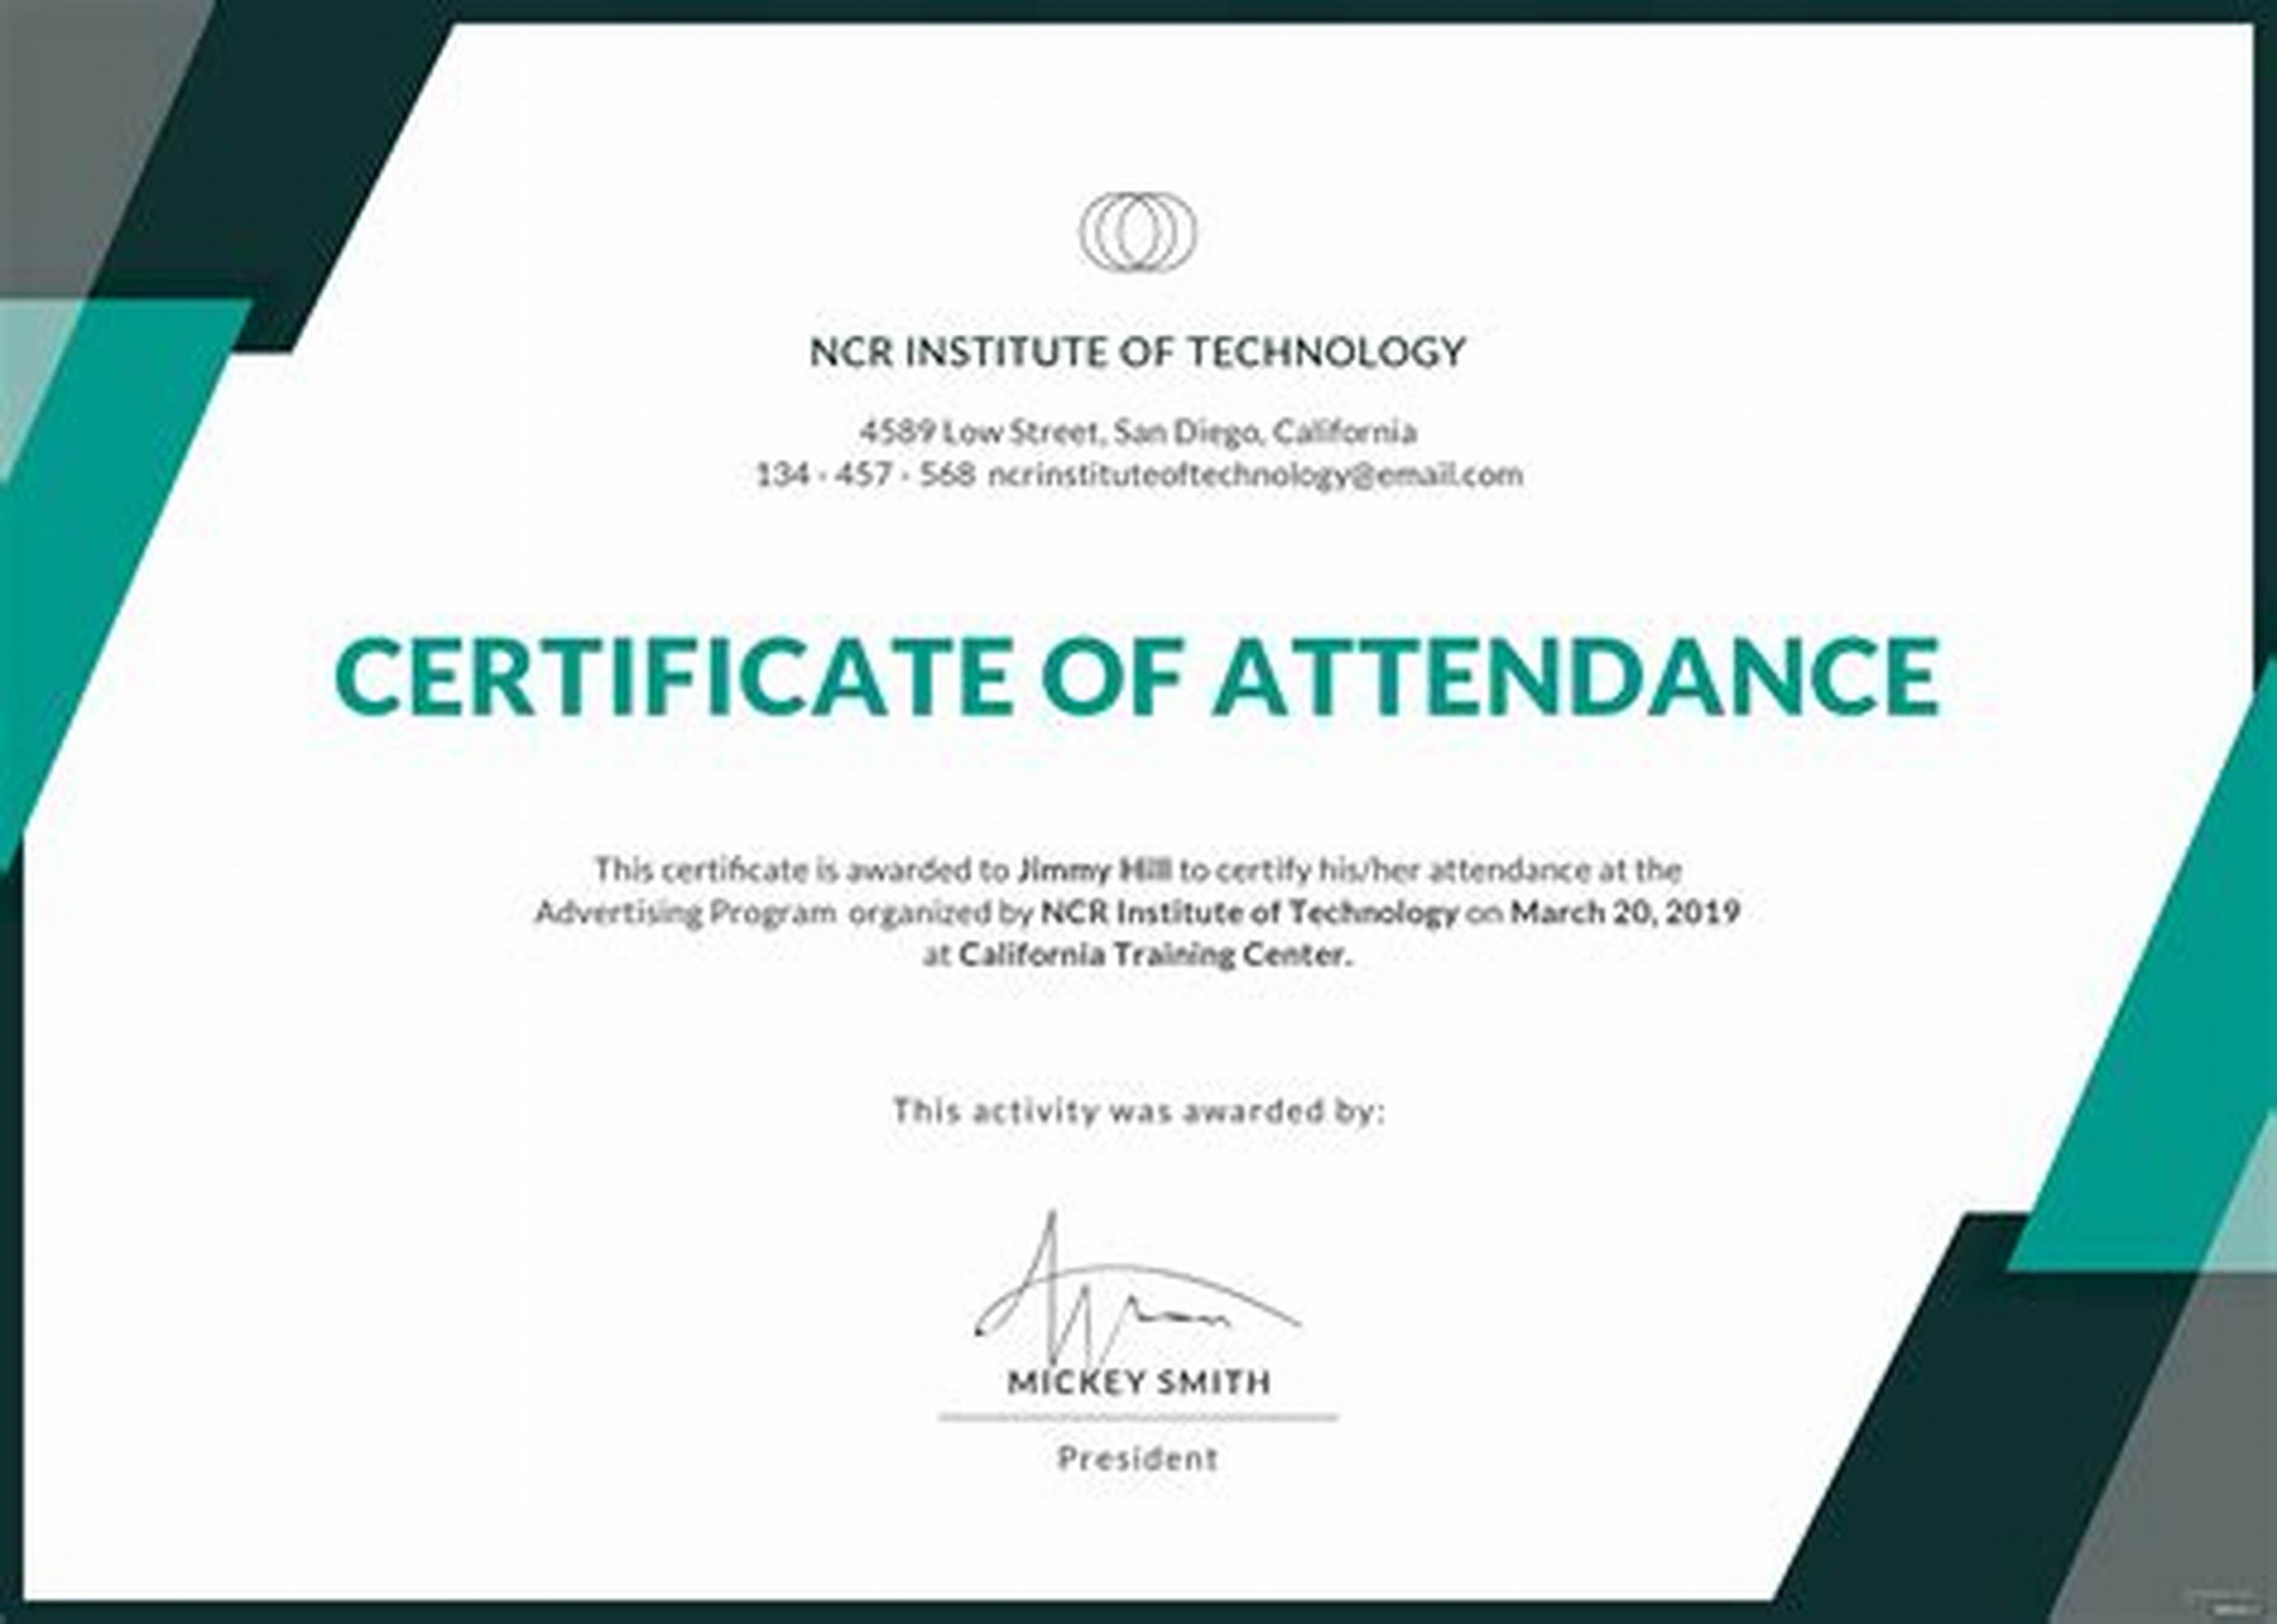 Conference Certificate Of Attendance Template 6